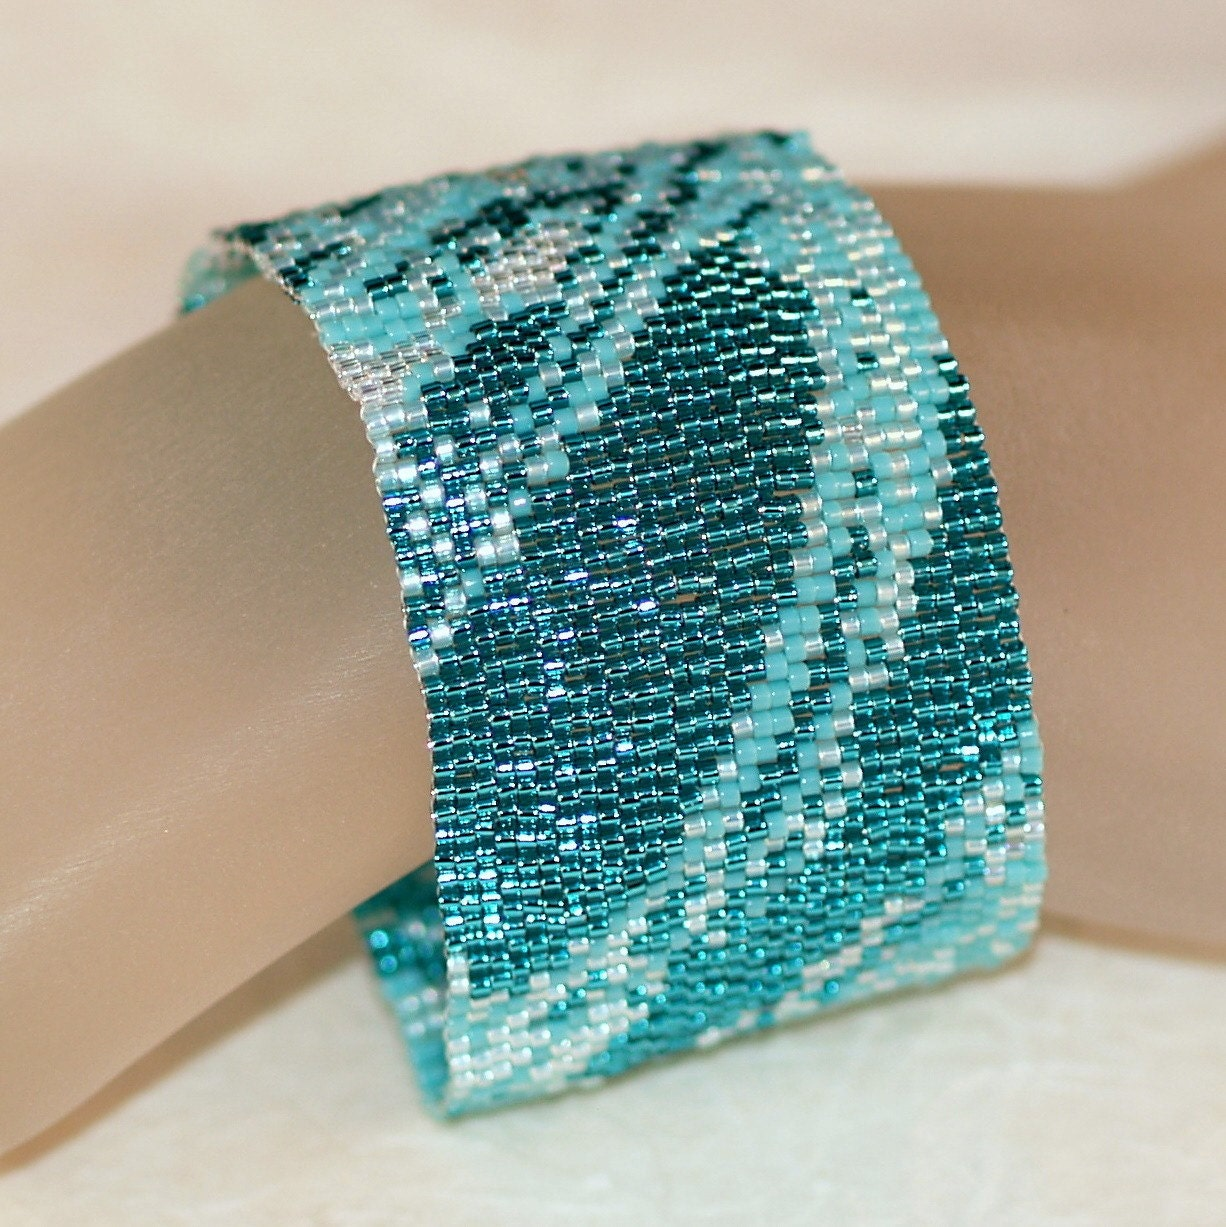 Seafoam Fabric - Shades of Aqua and Turquoise in a Peyote Bracelet / Cuff (3207)